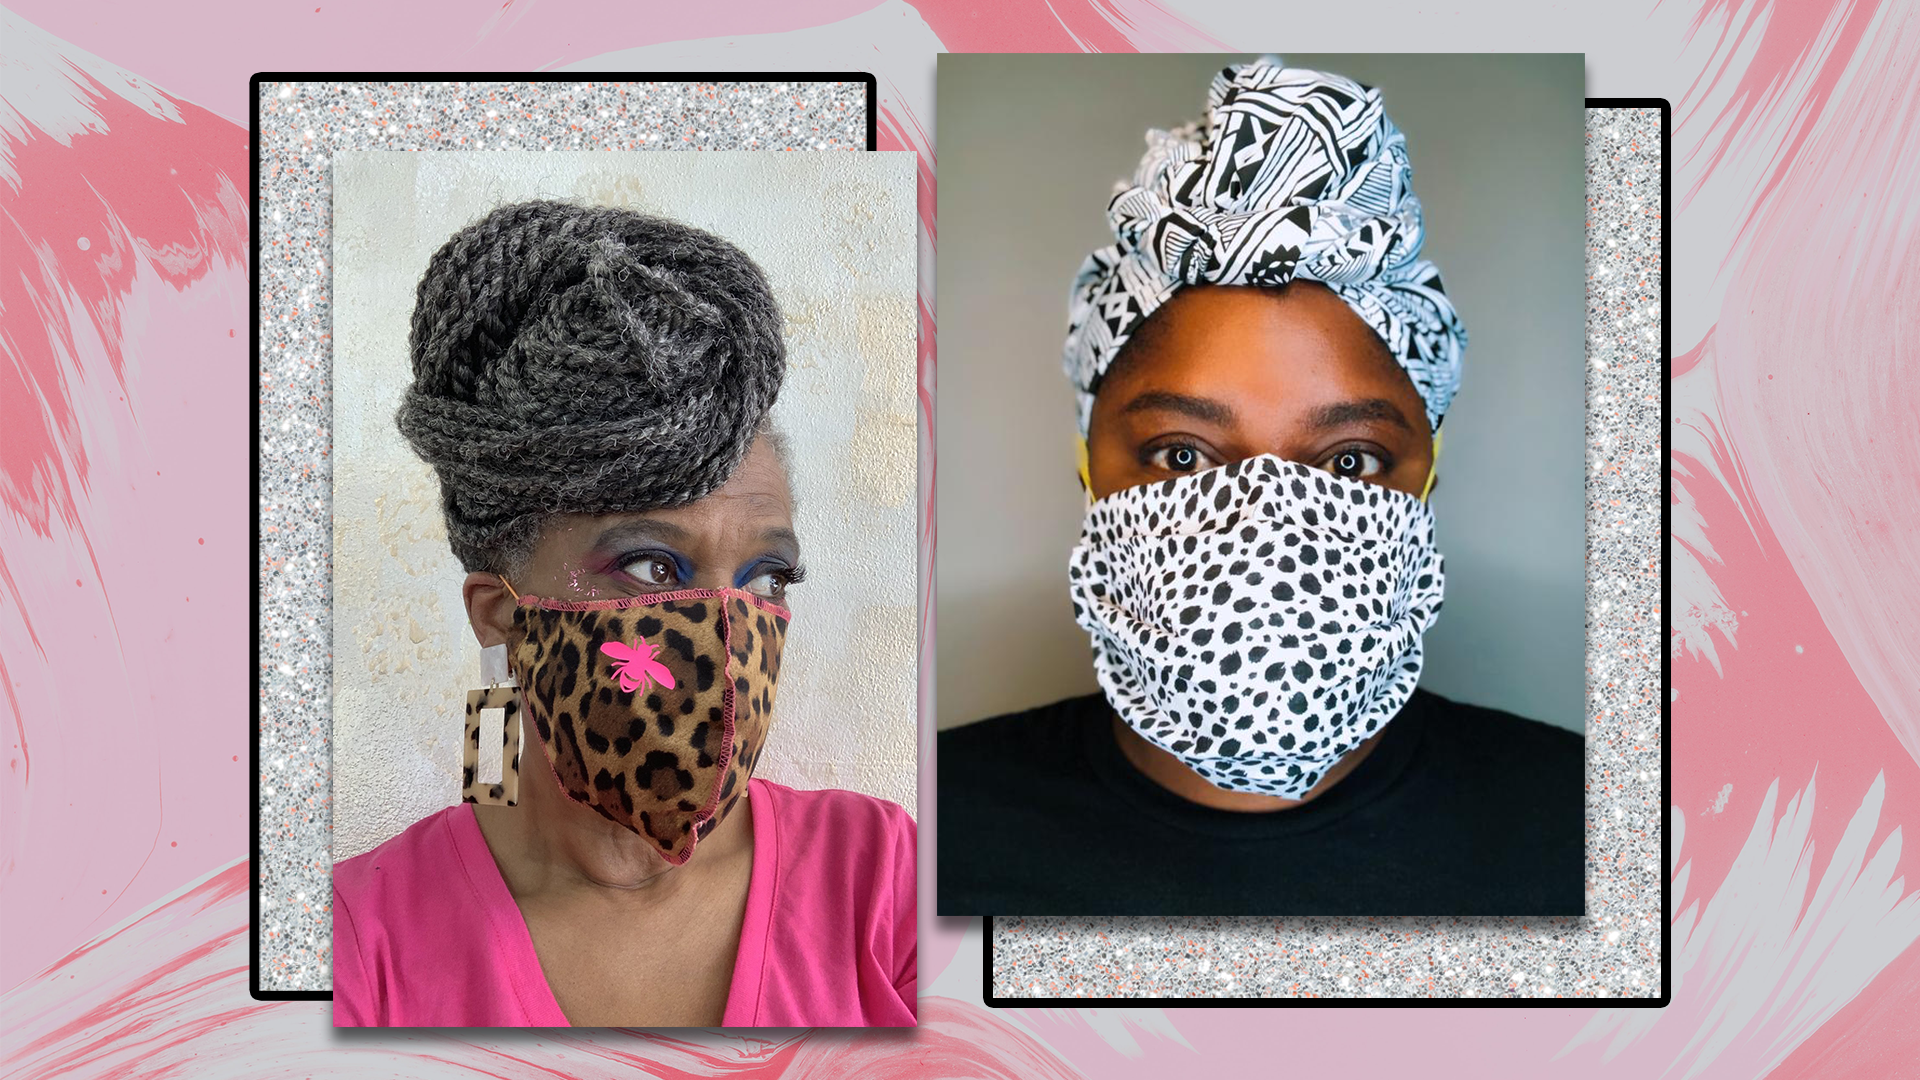 Buy Your Next Cloth Face Mask From One Of These Black-Owned Brands